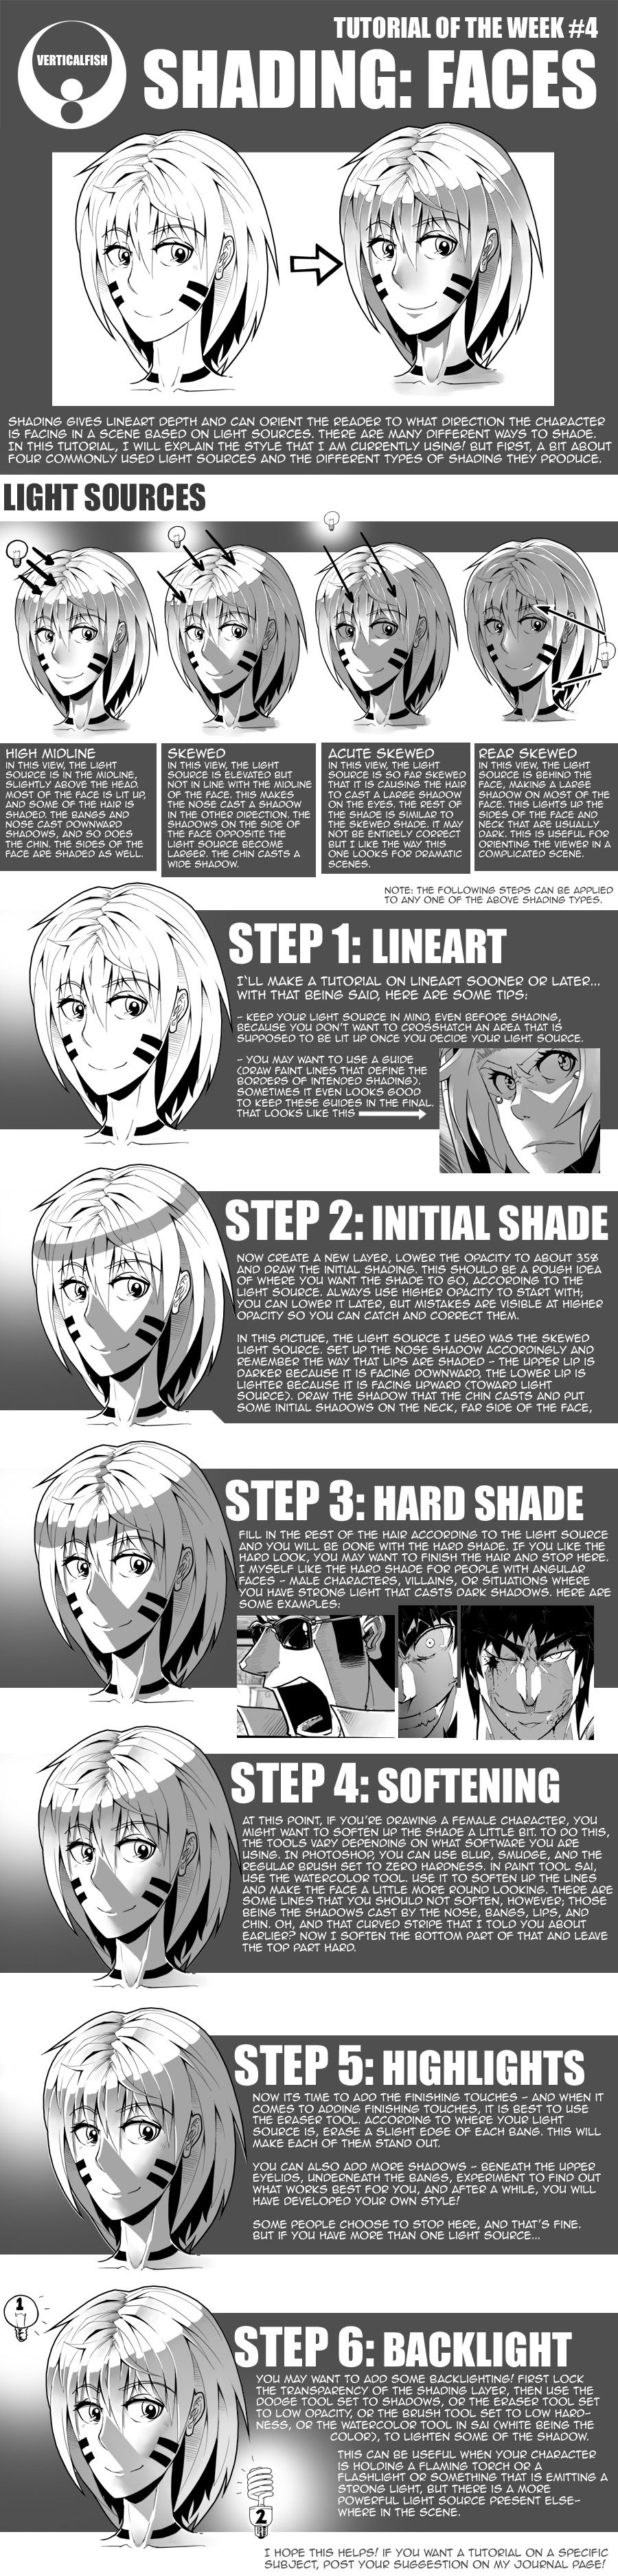 TOW4 Shading Faces by verticalfish on deviantART